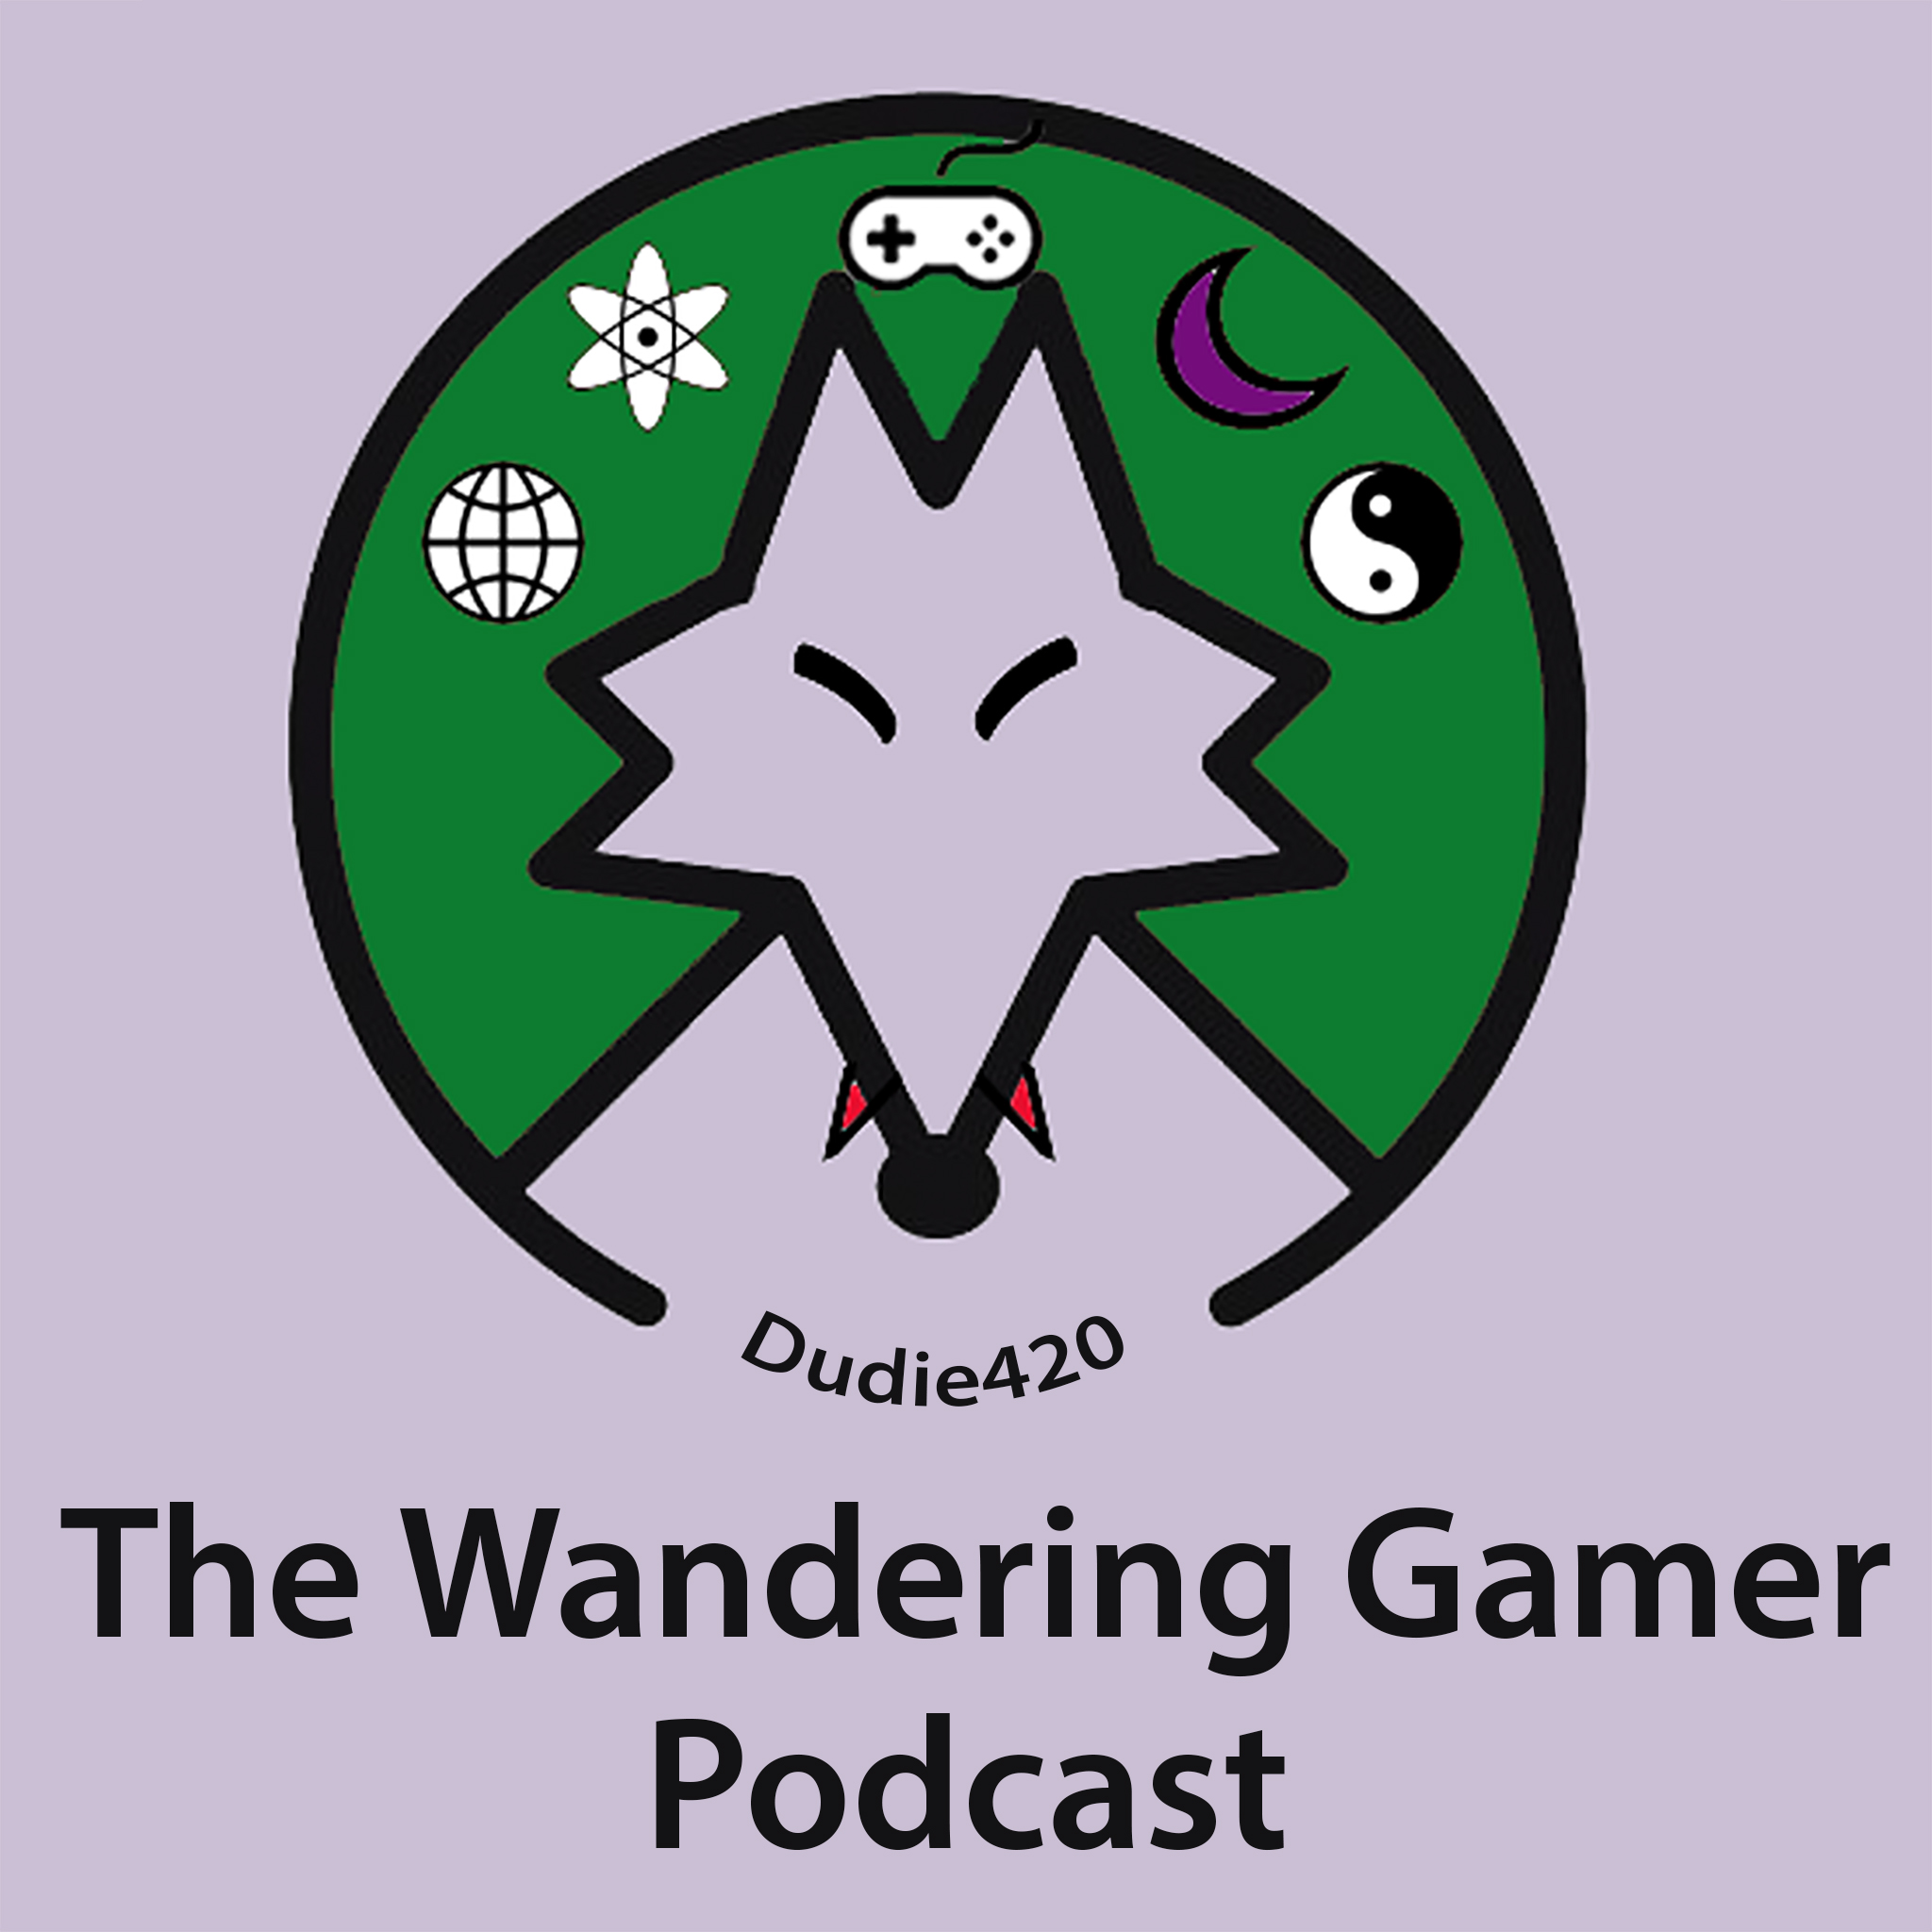 The Wandering Gamer Podcast